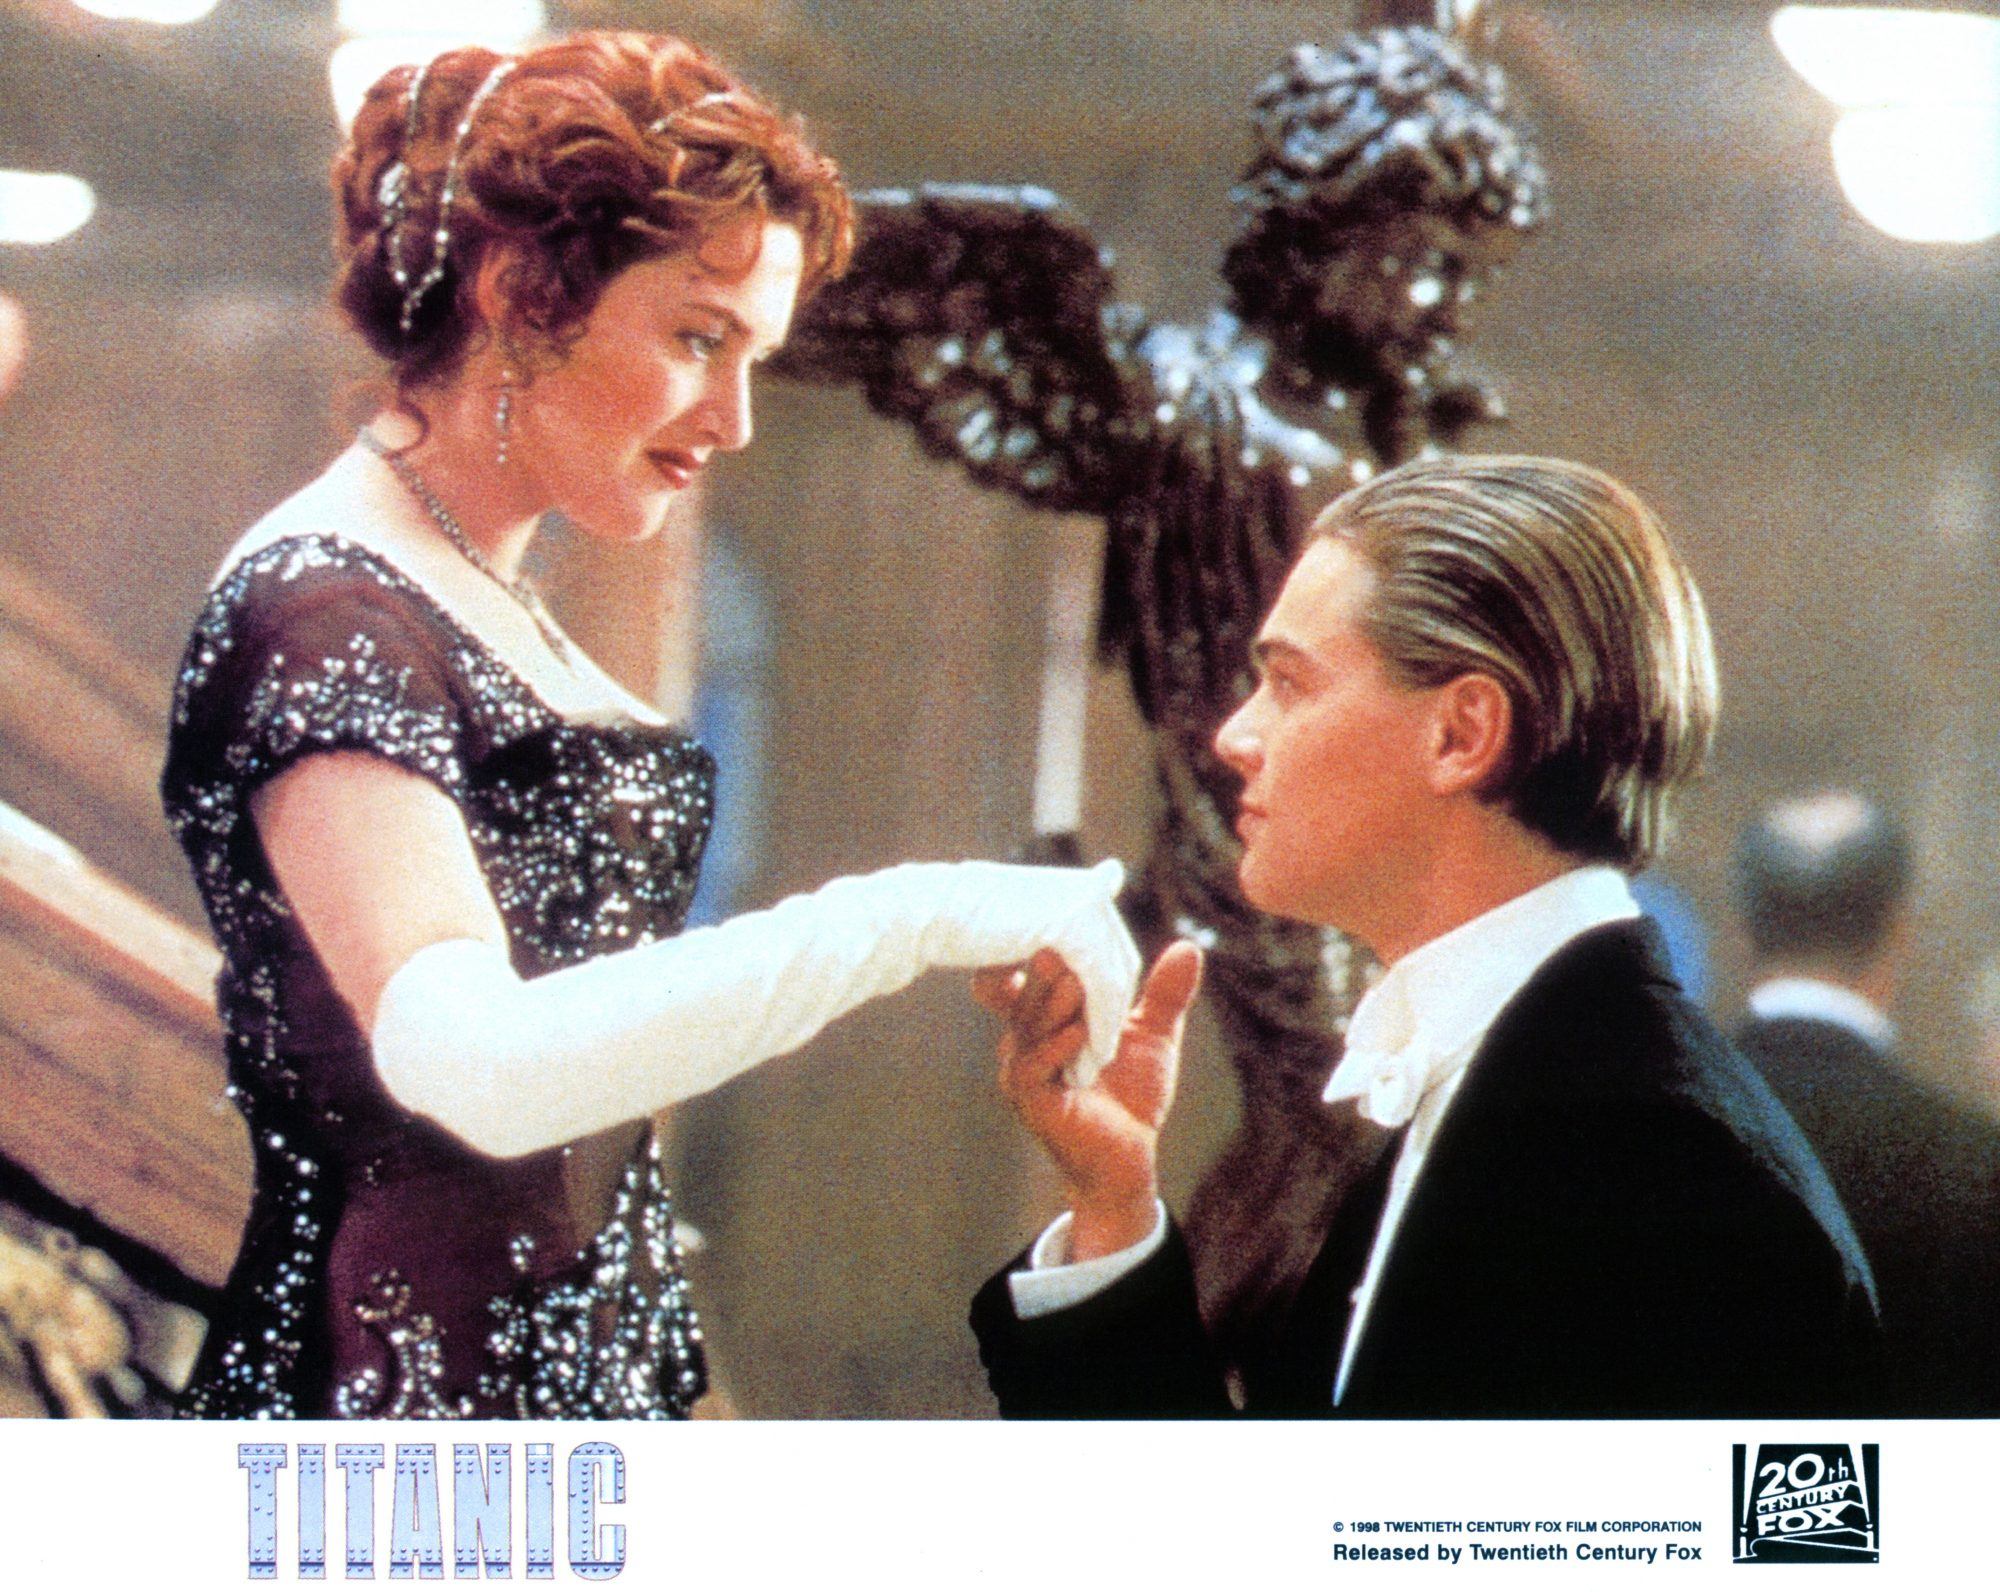 Kate Winslet in 'Titanic'